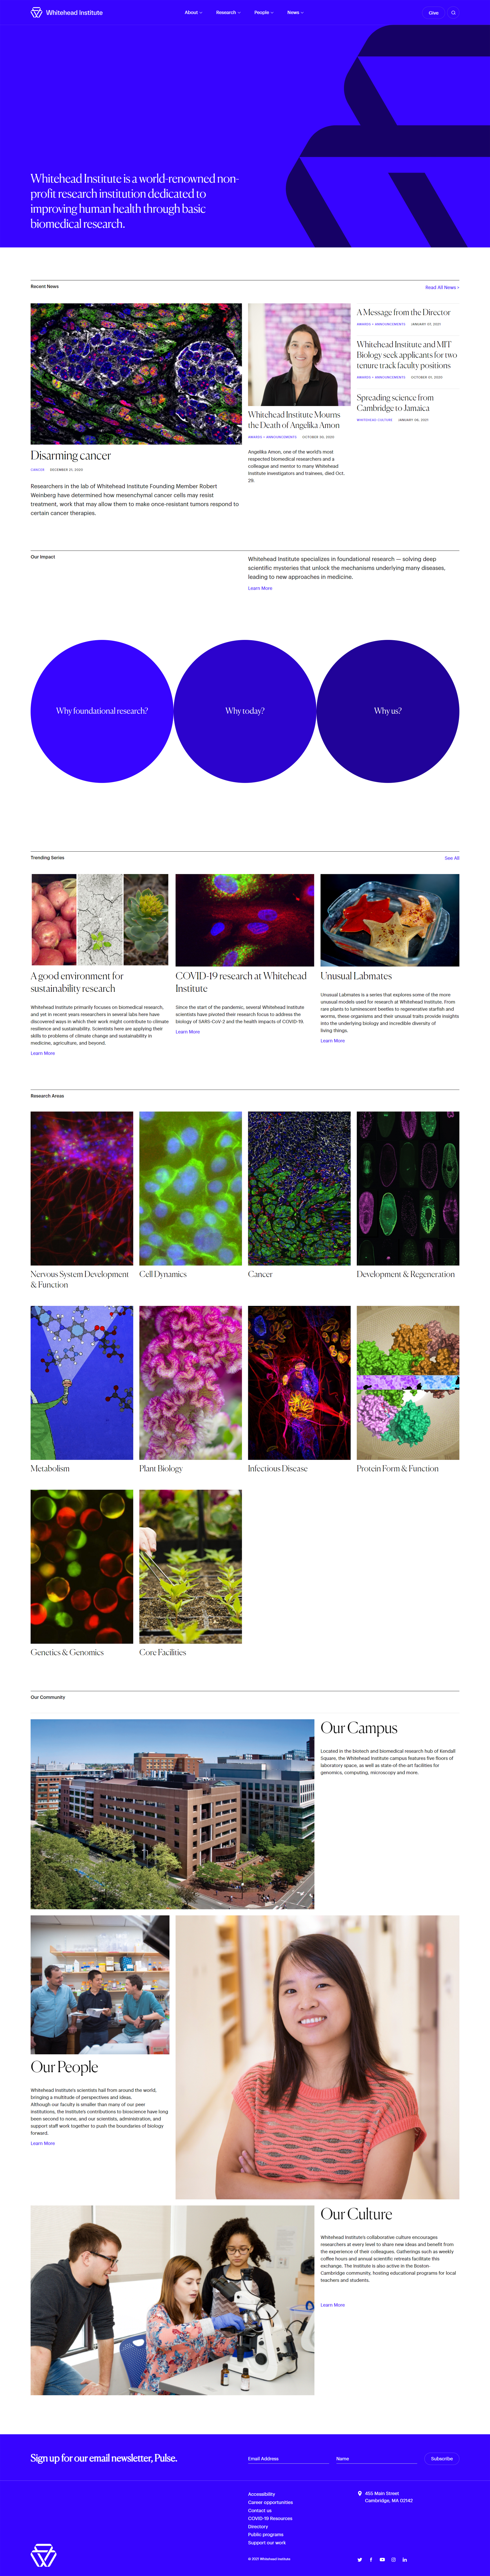 Whitehead Institute of MIT website development project